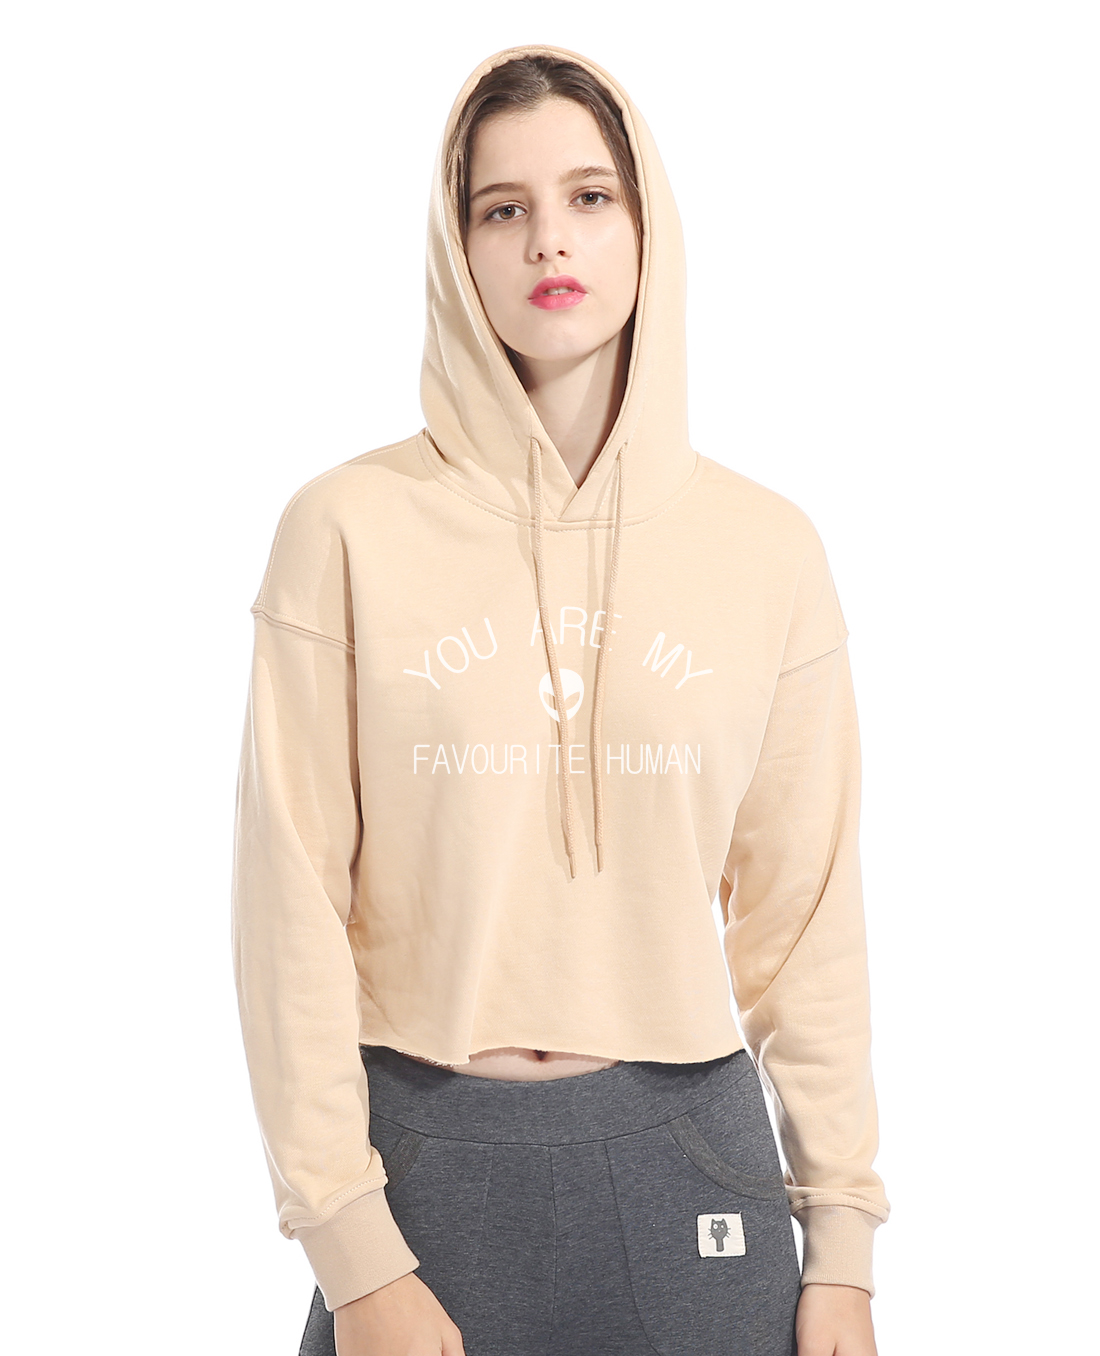 Casual Hoodie Print YOU ARE MY FAVOURITE HUMAN Letter Cotton Sweatshirt For Women 2018 Cotton Hoodies Fashion Fitness Kpop Hoody